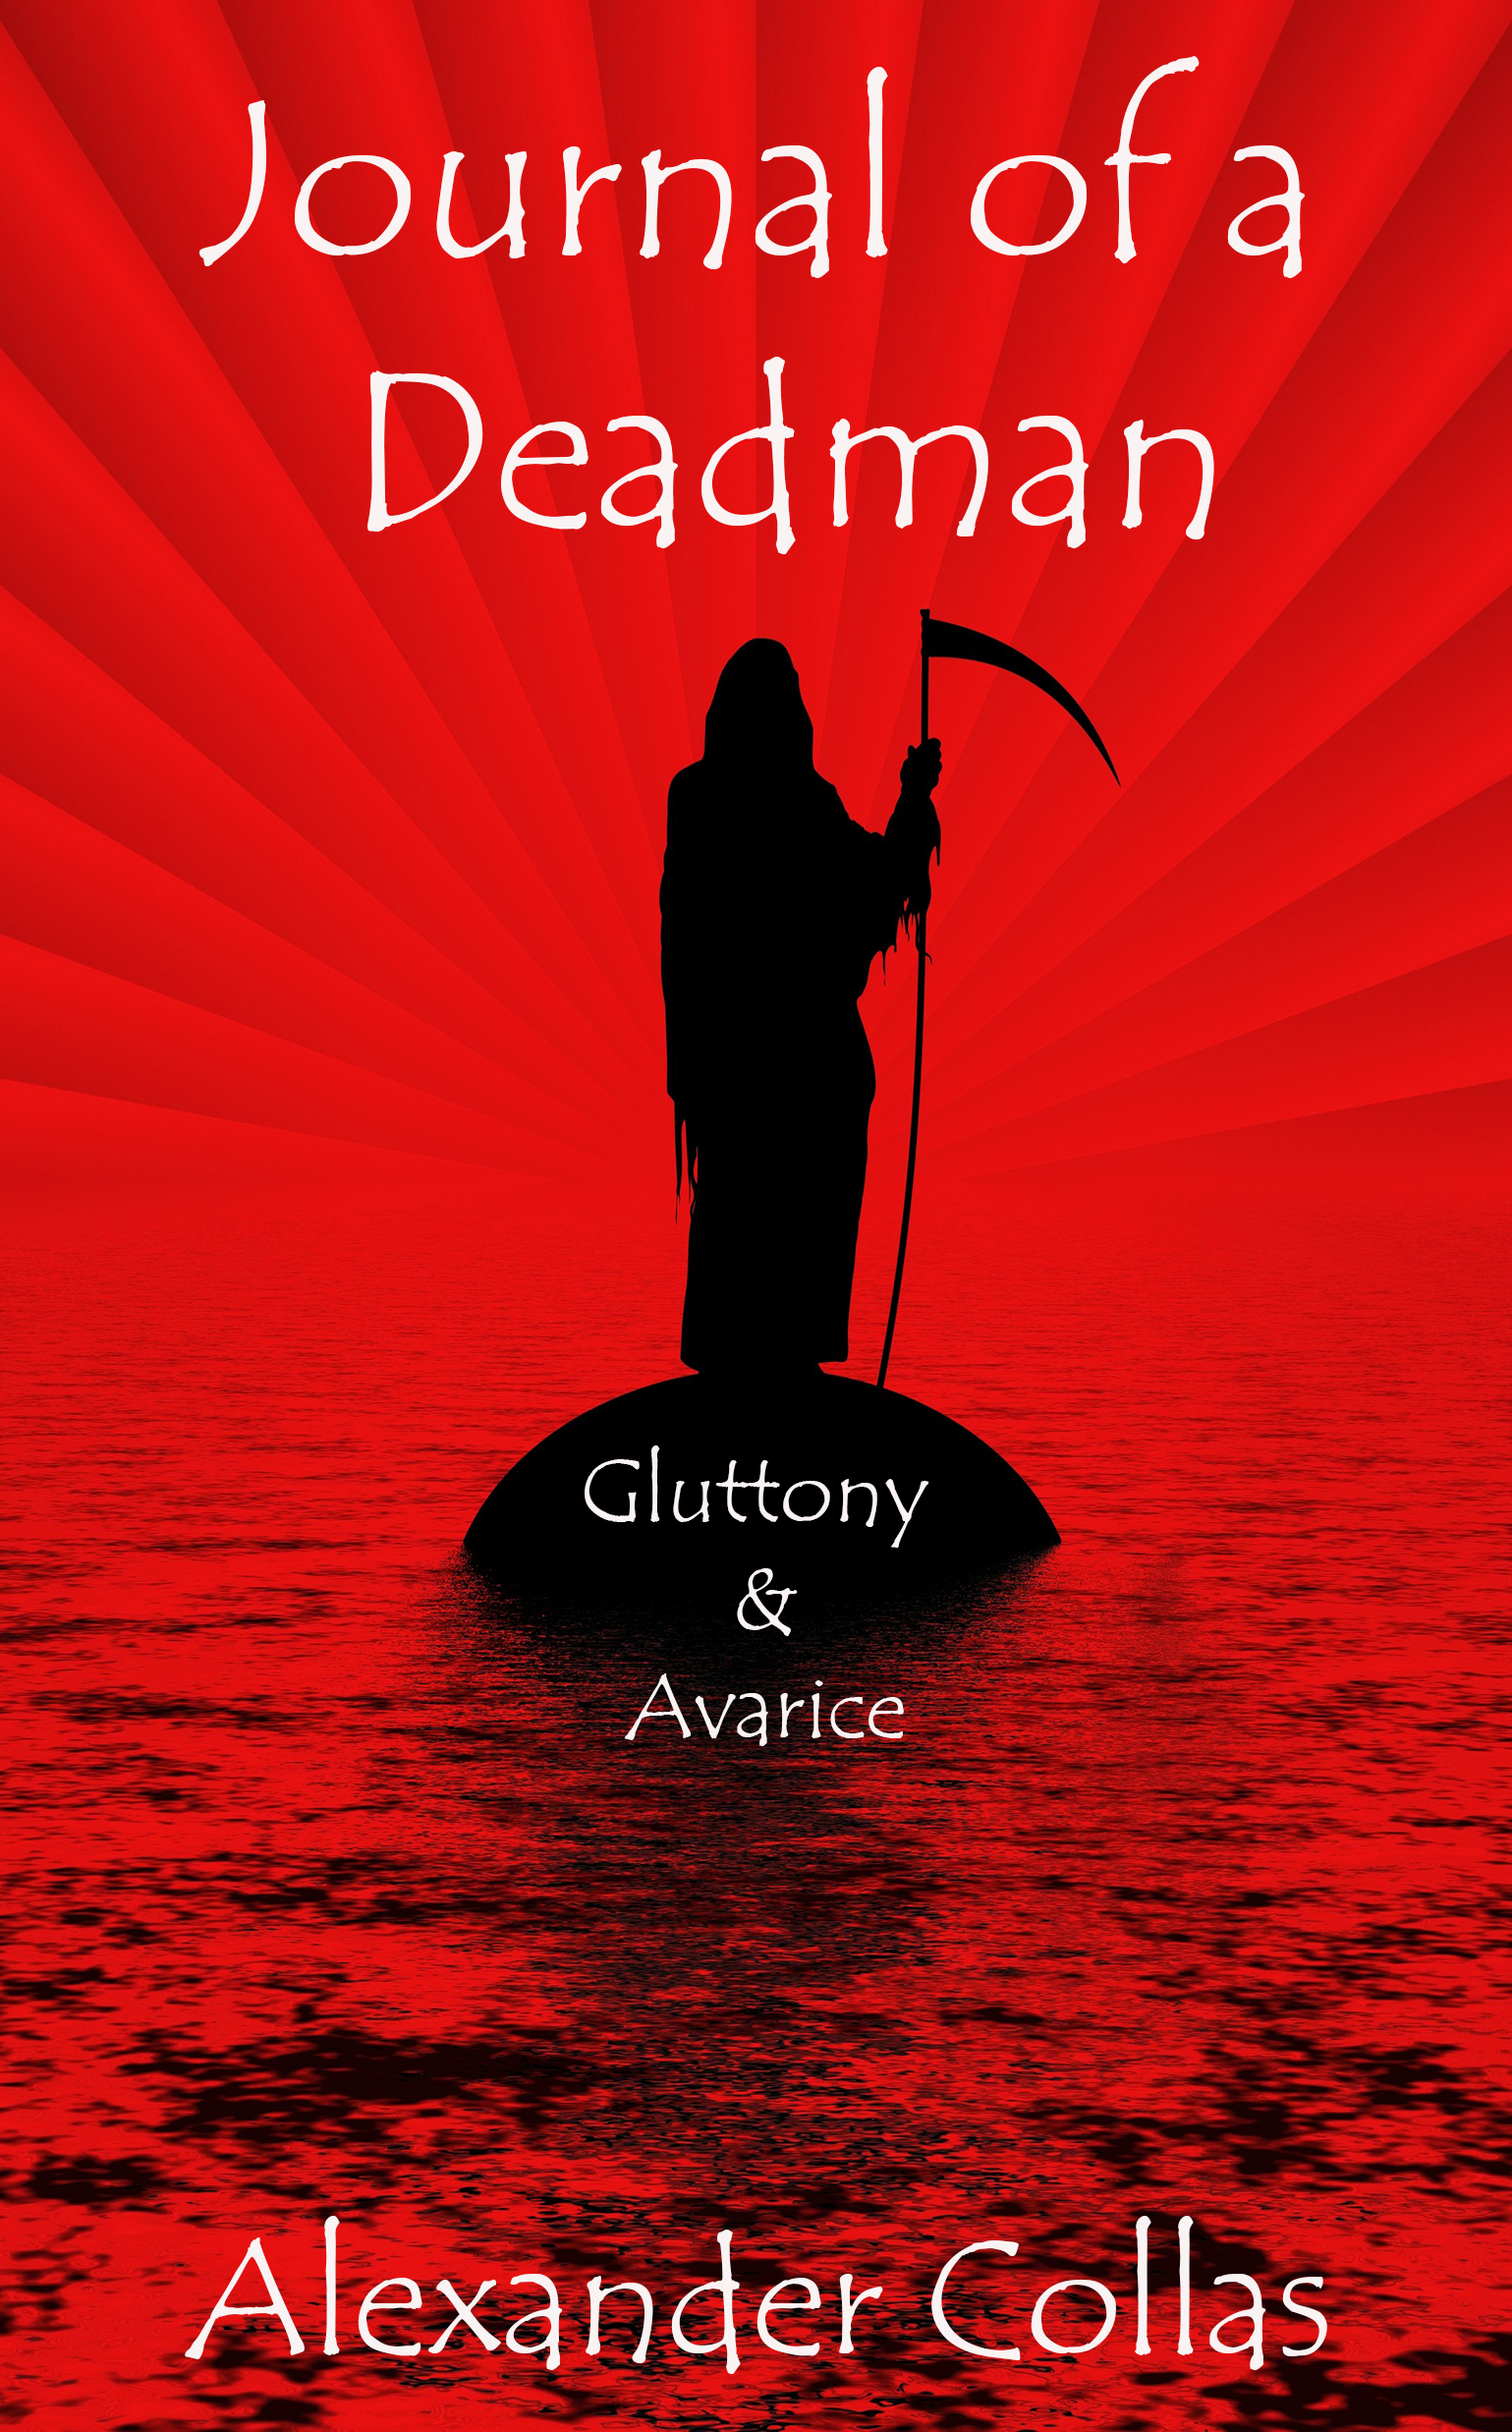 Journal of a Deadman 3 - Gluttony & Avrarice